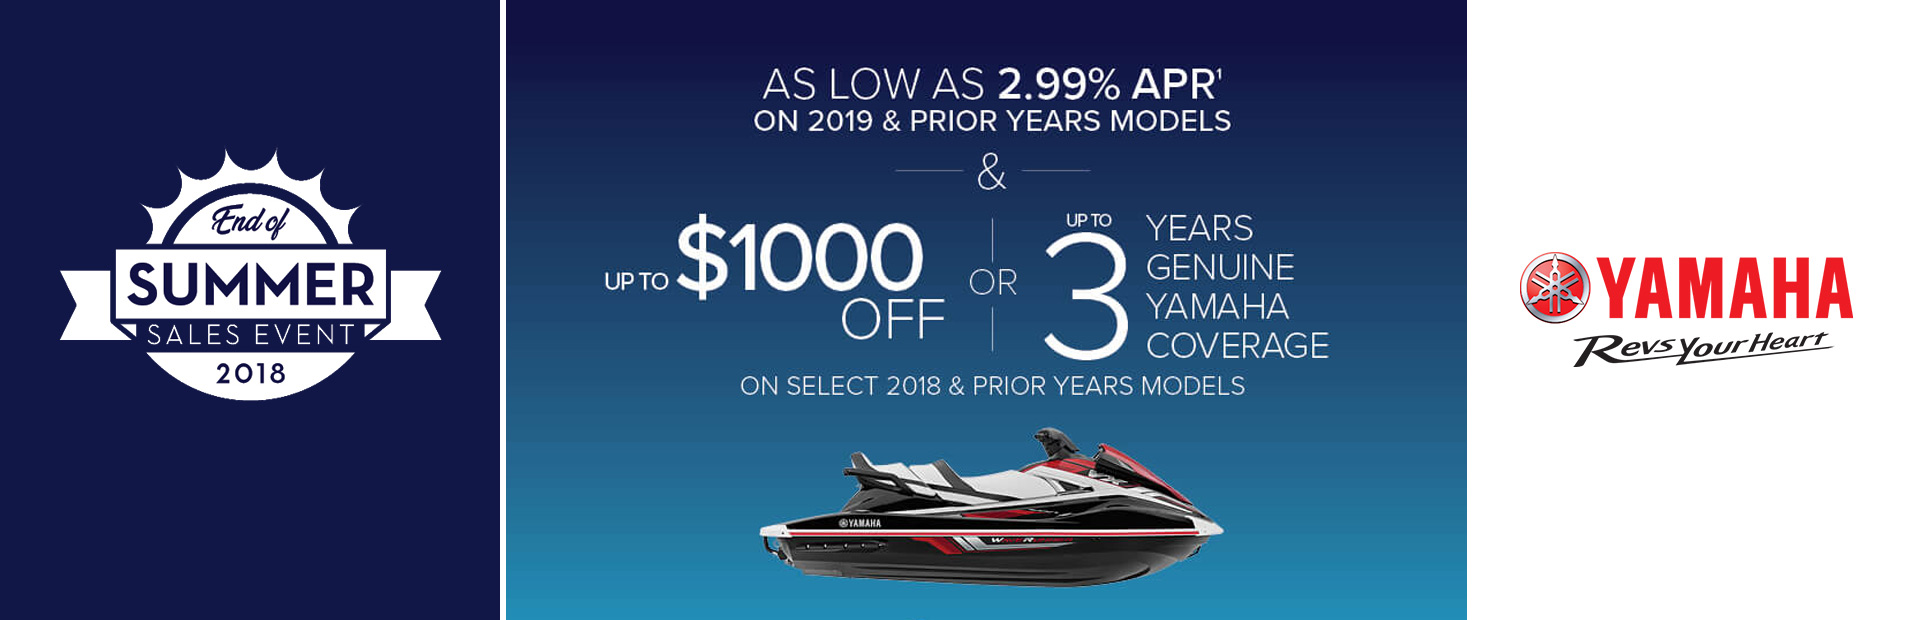 As Low As 2.99 % APR On 2019 & Prior Years Models